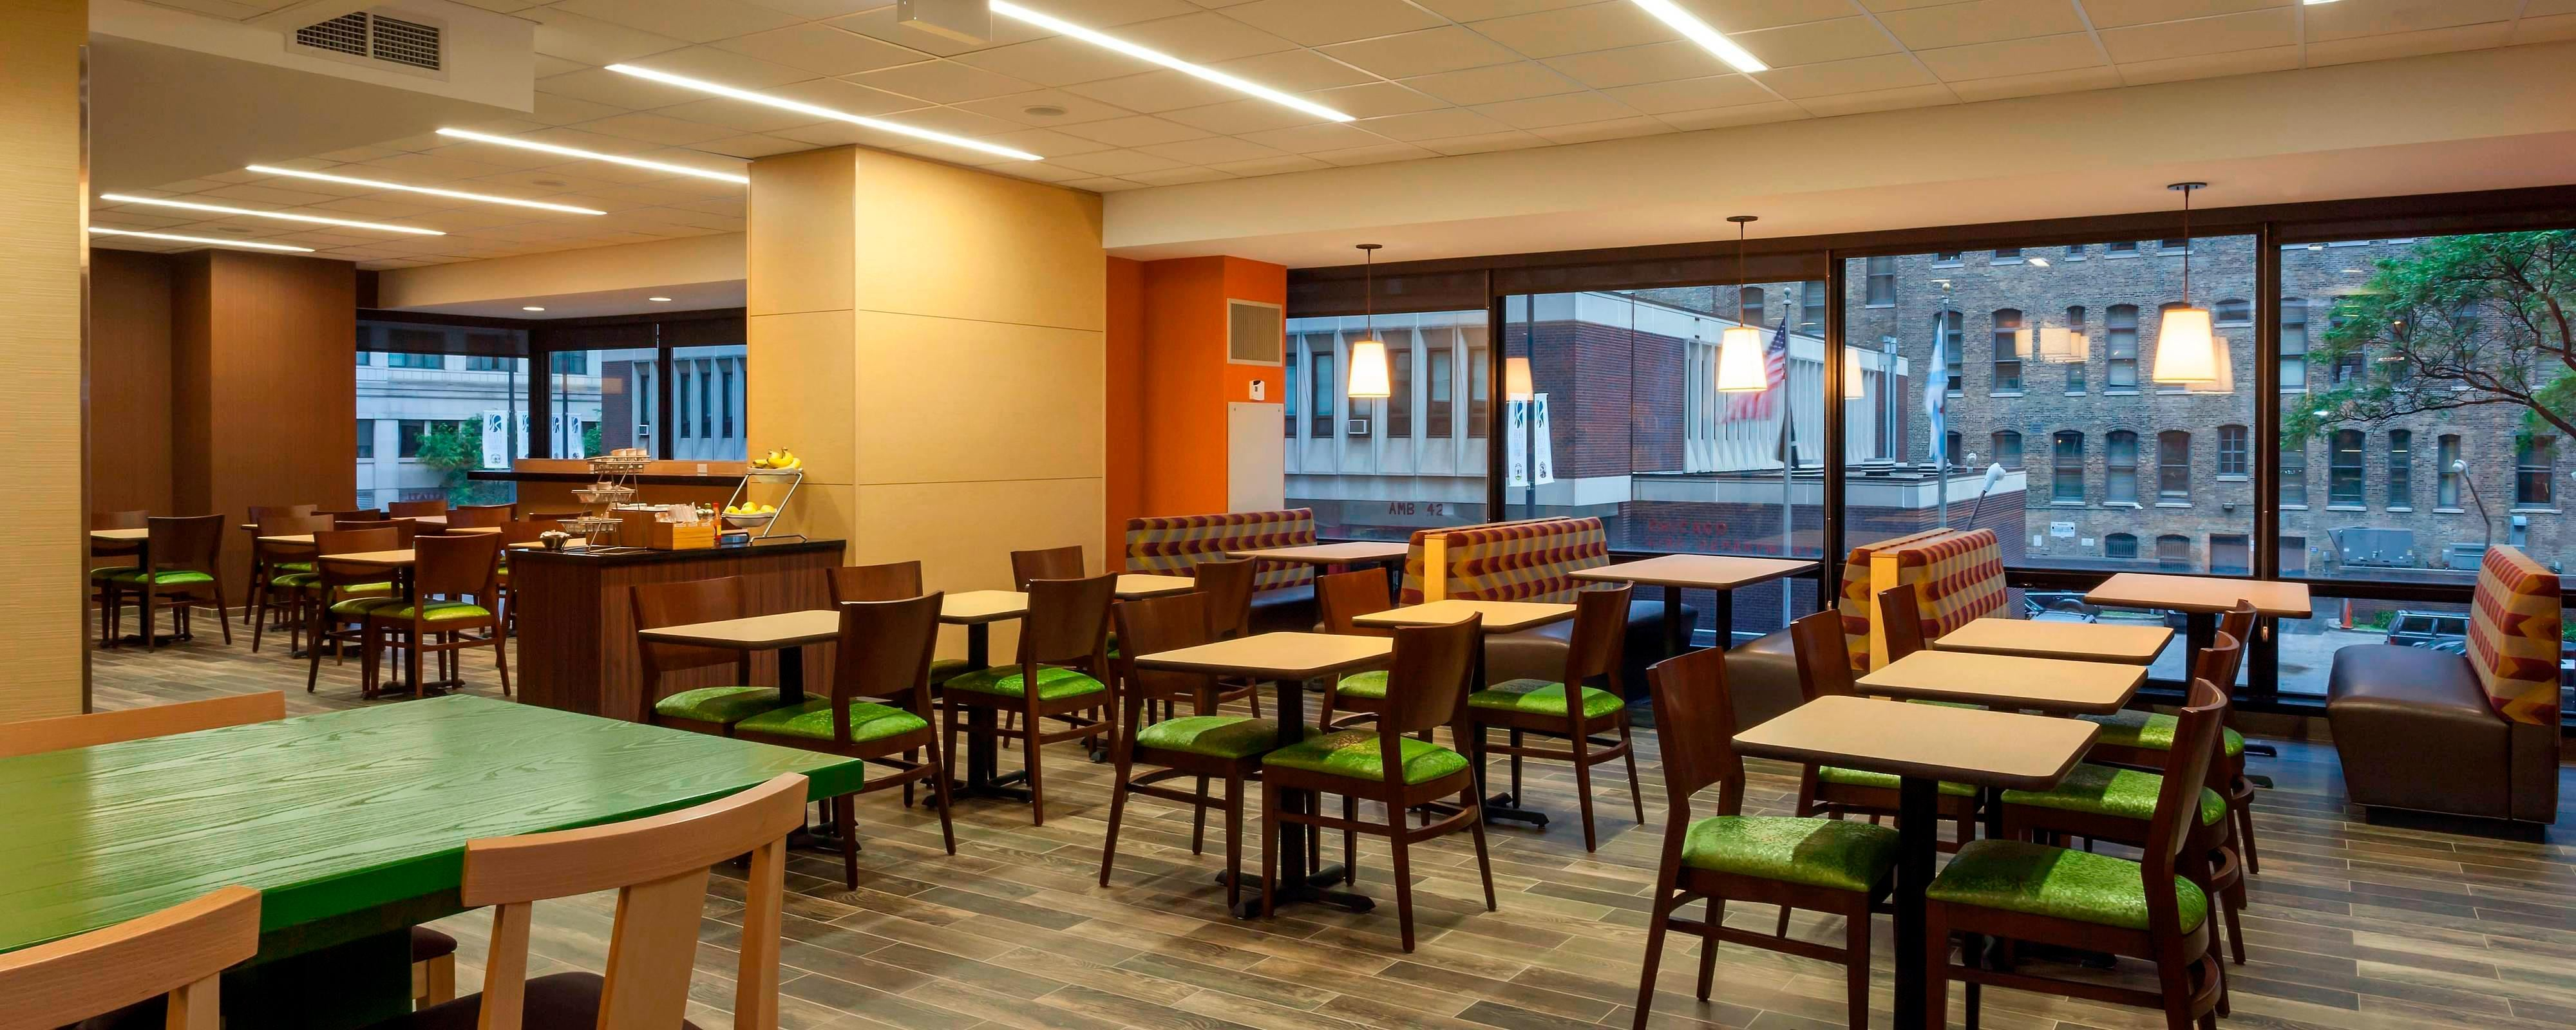 Hotels with Free Breakfast in River North | Fairfield Inn